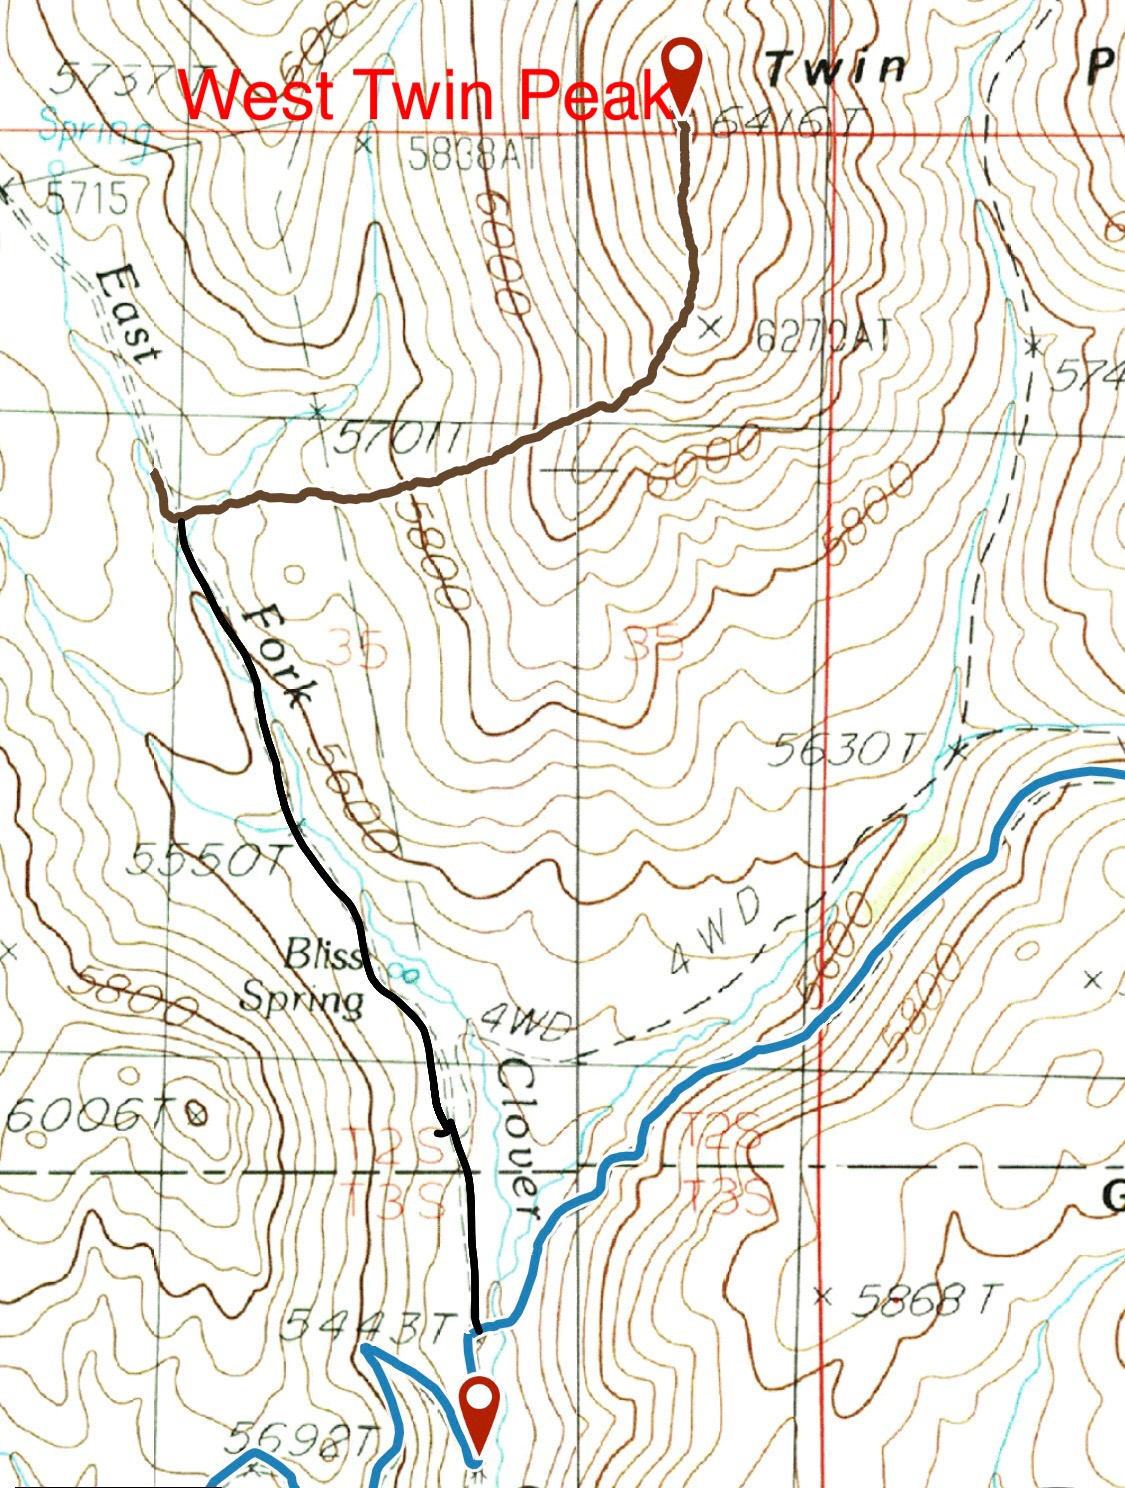 The Davis Mountain Road is in blue. The heavy black line is the road up the East Fork. The brown line is my GPS track to the summit.